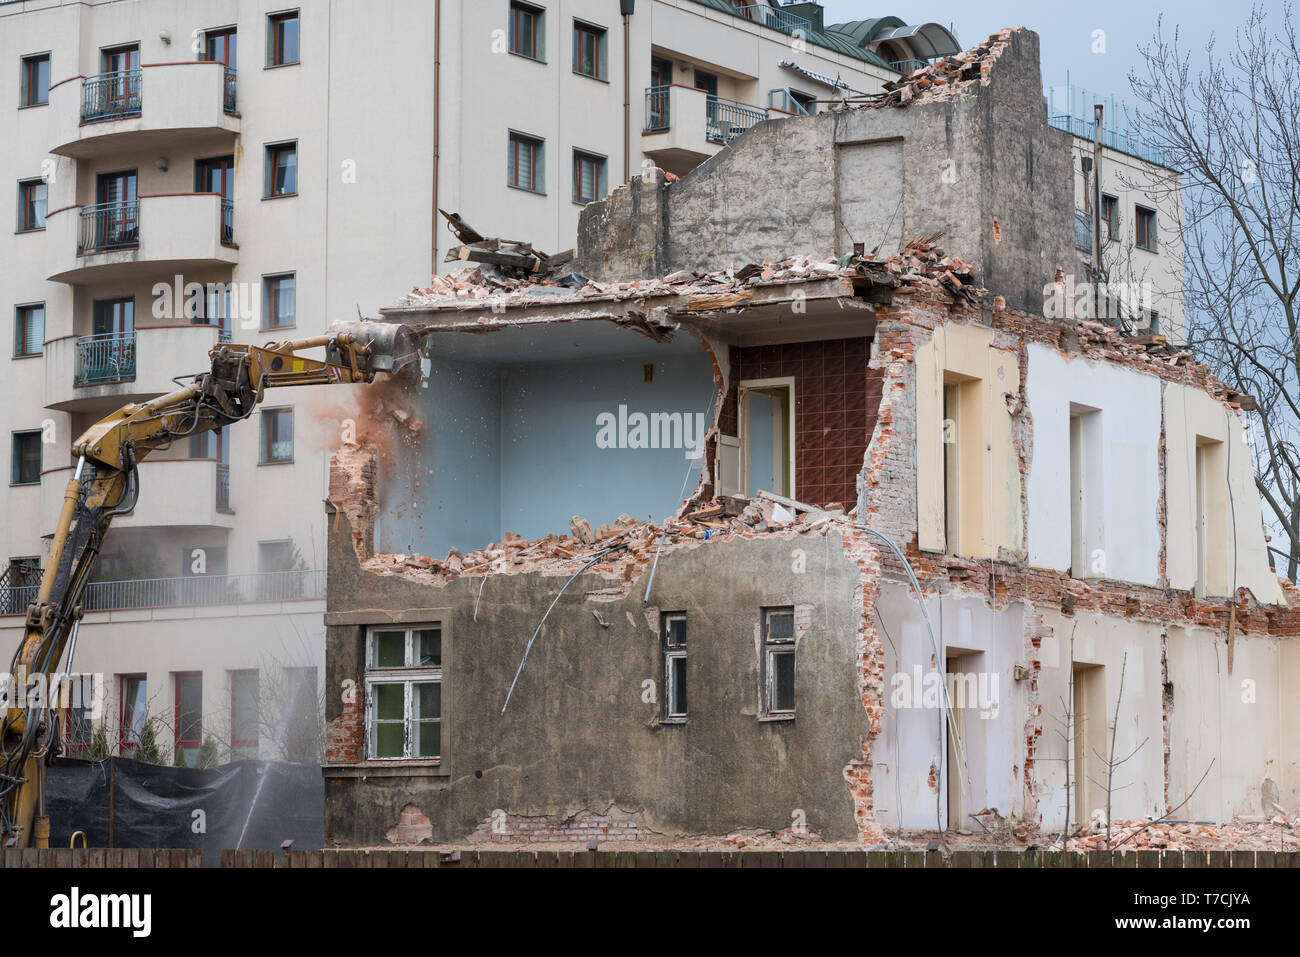 Old residential three story building demolition with excavator - Stock Image